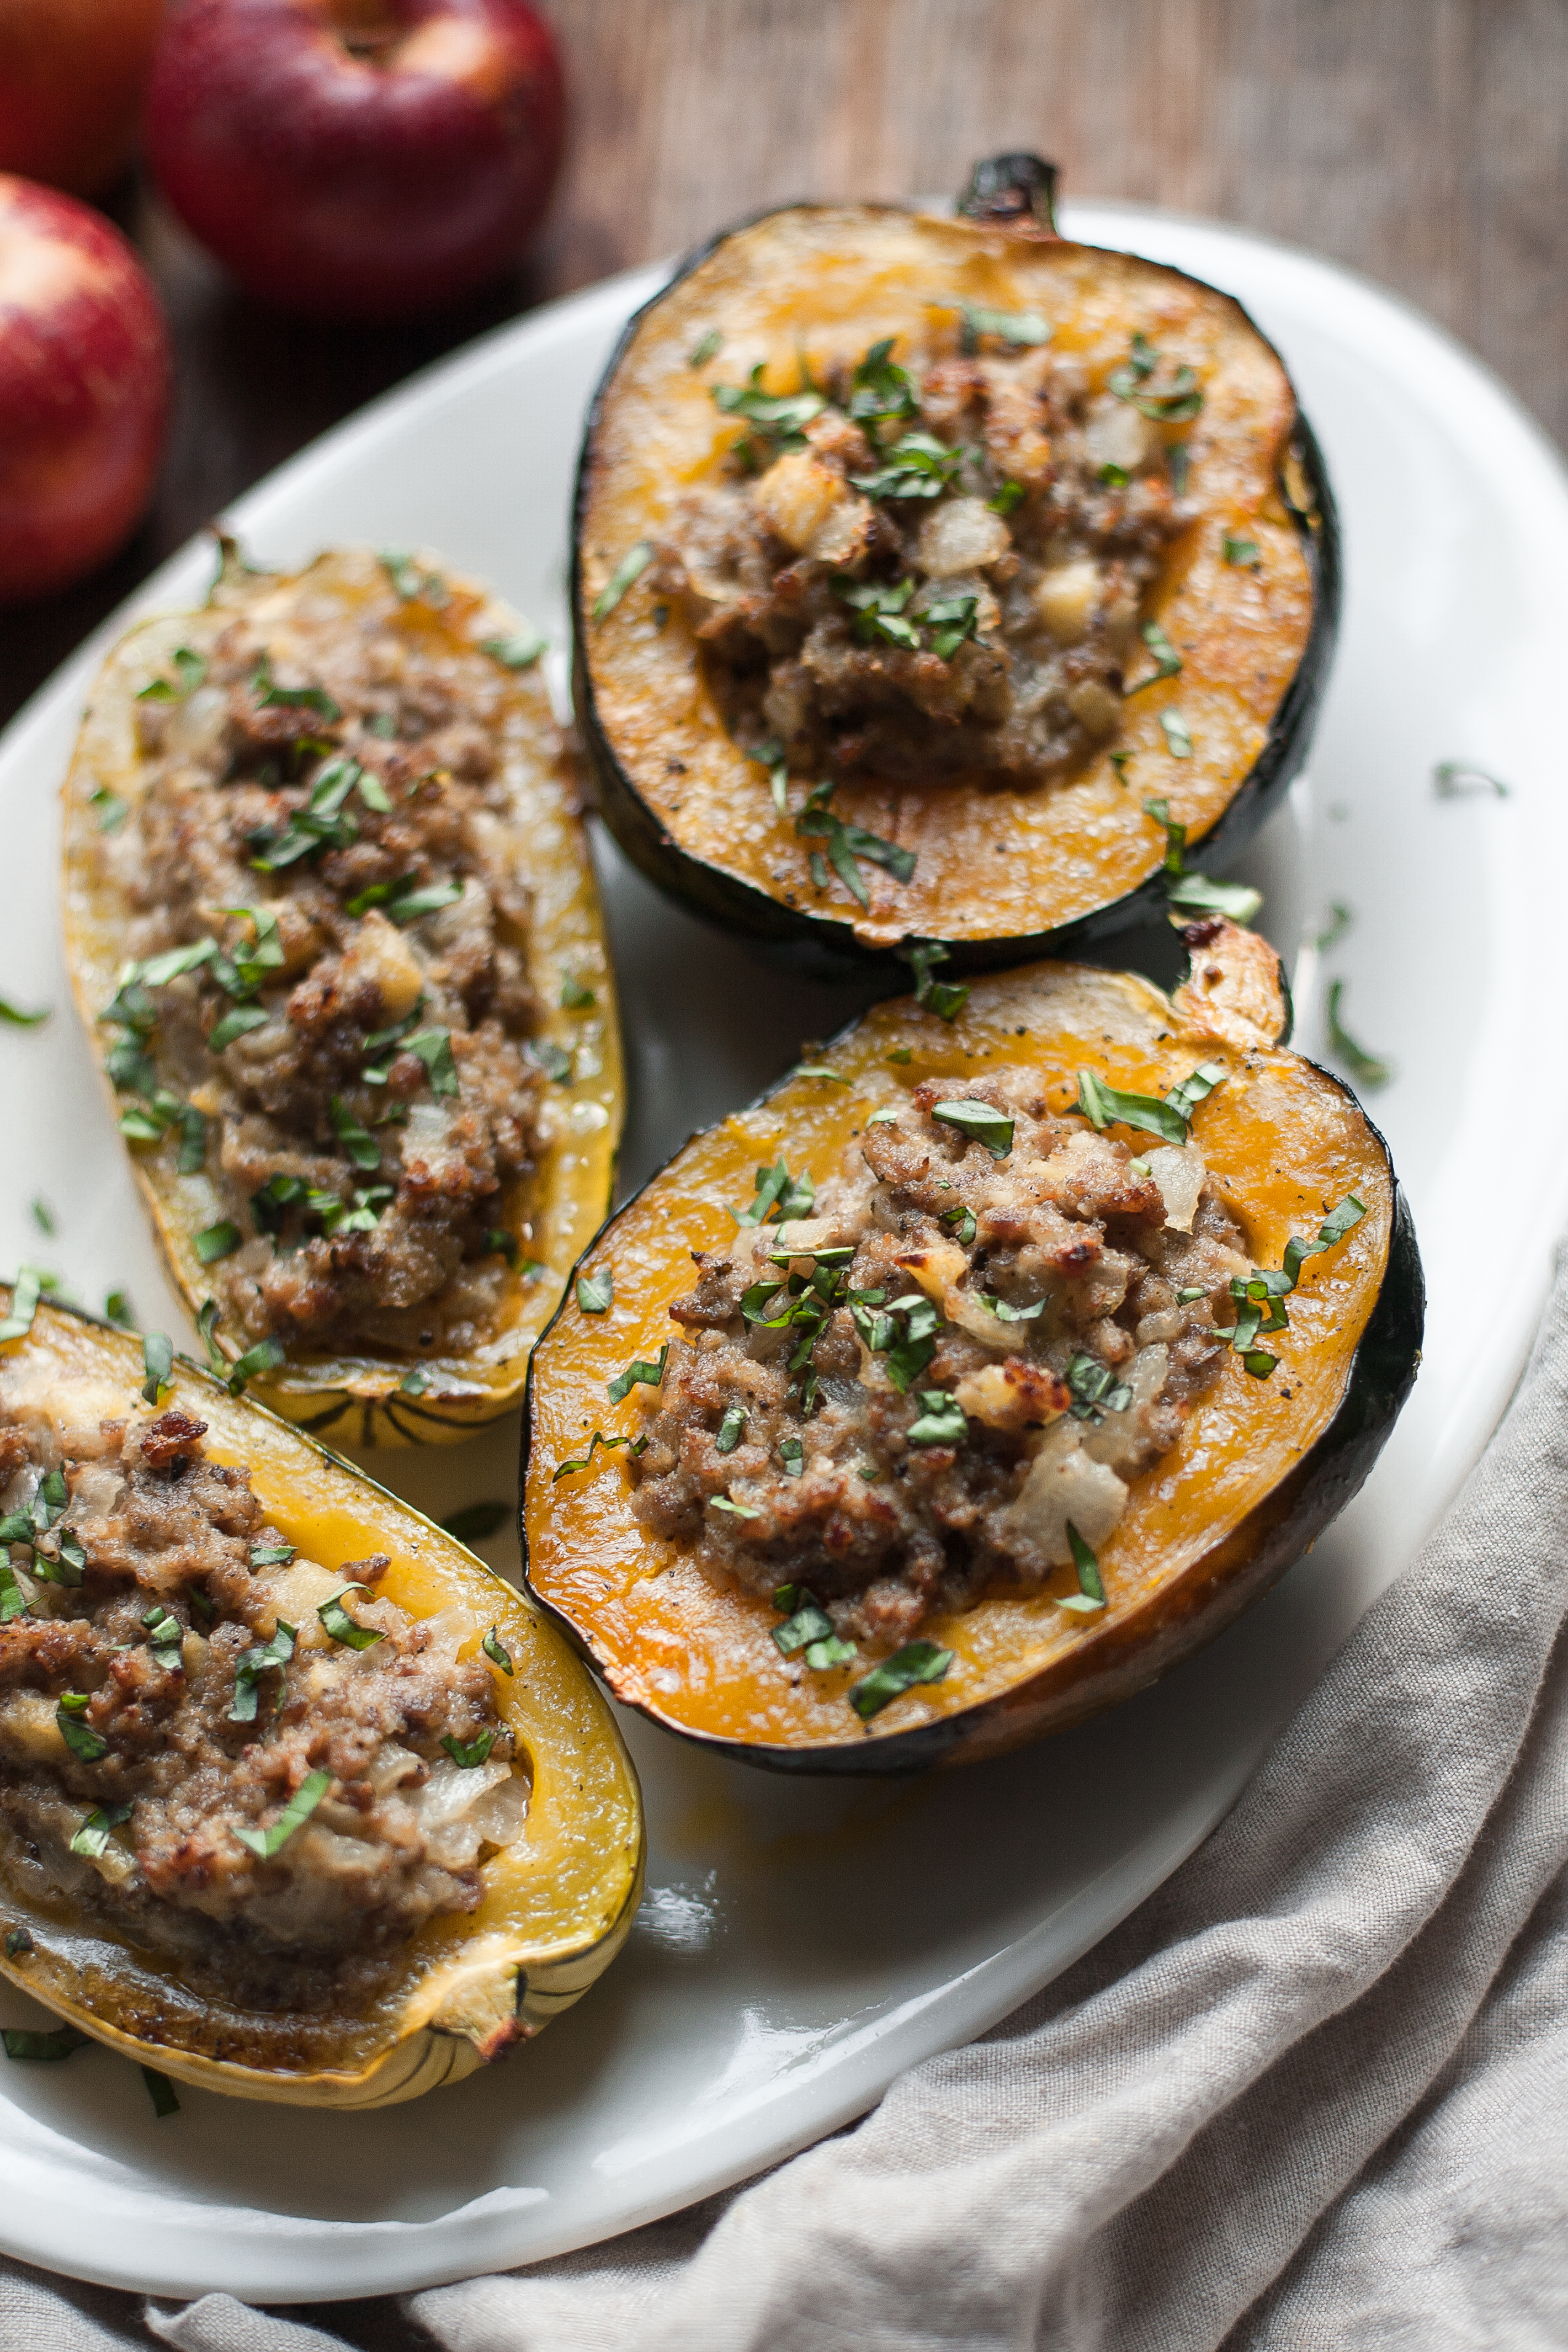 Top 16 Paleo Recipes of 2016: Stuffed Squash with Sausage and Apple